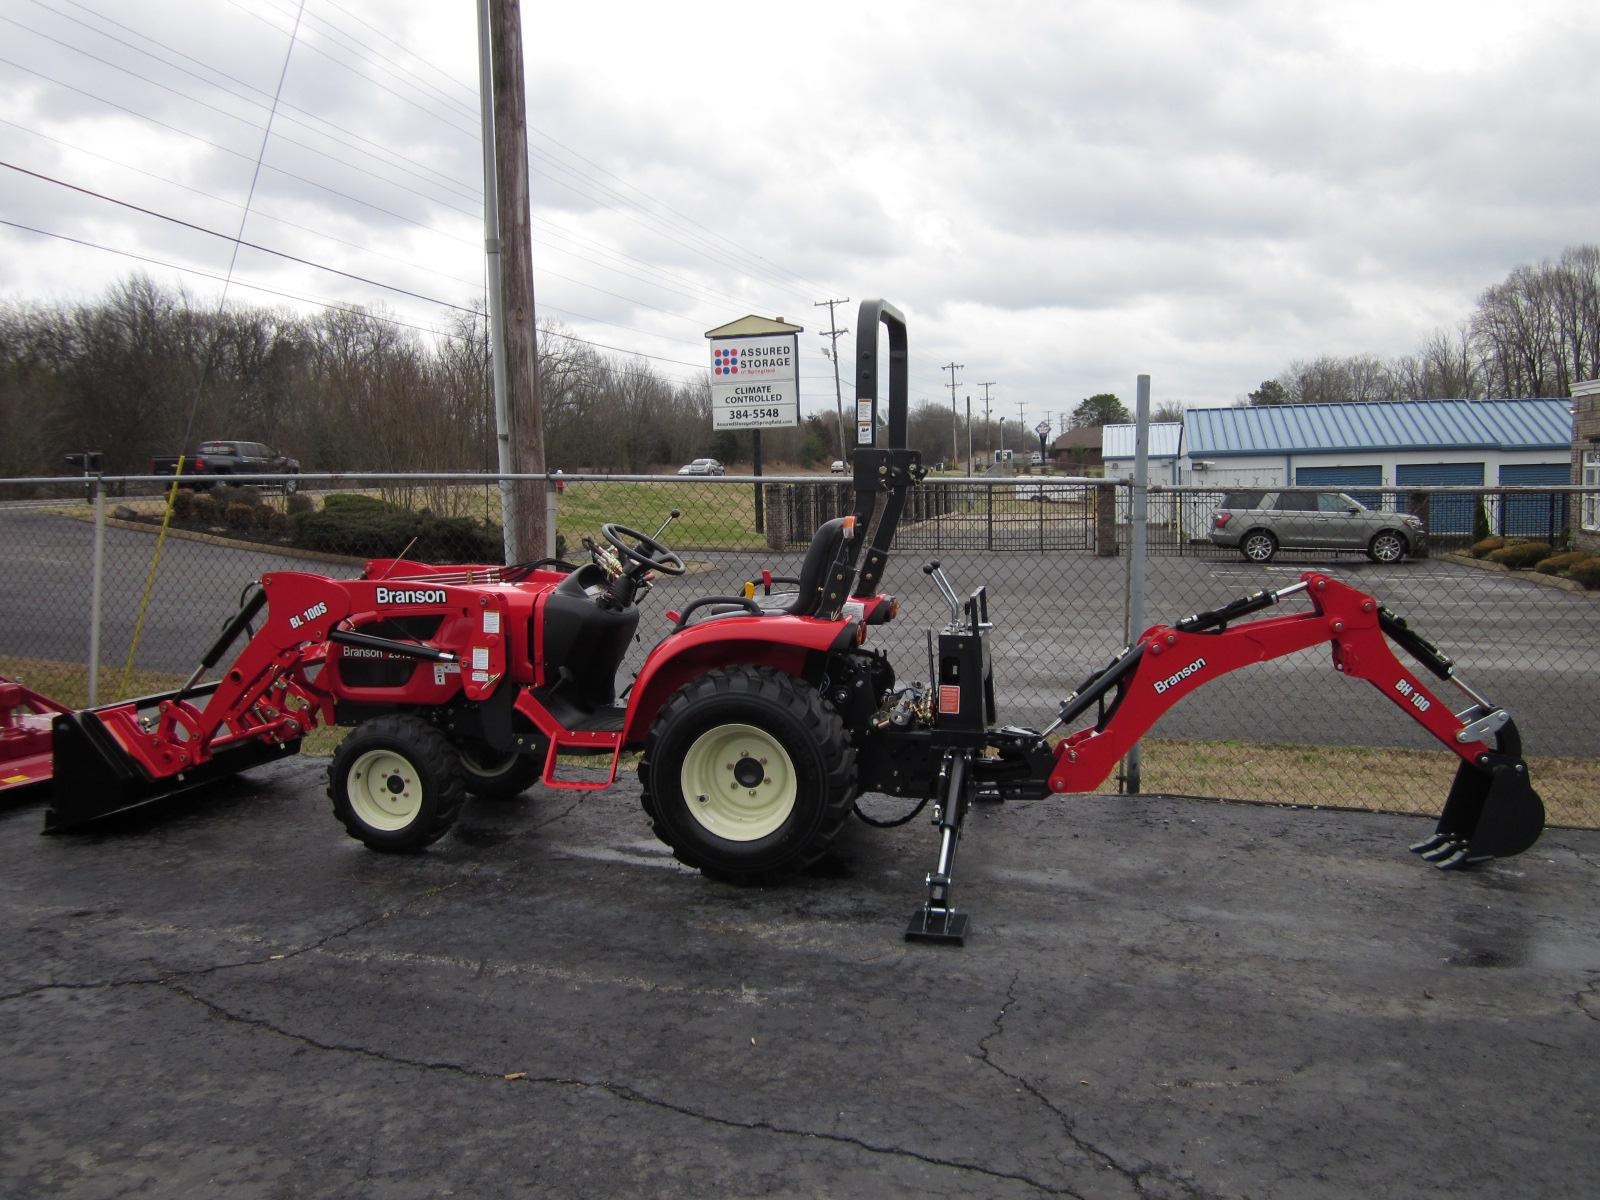 Inventory from Branson Midstate Turf & Tractor, LLC Springfield, TN